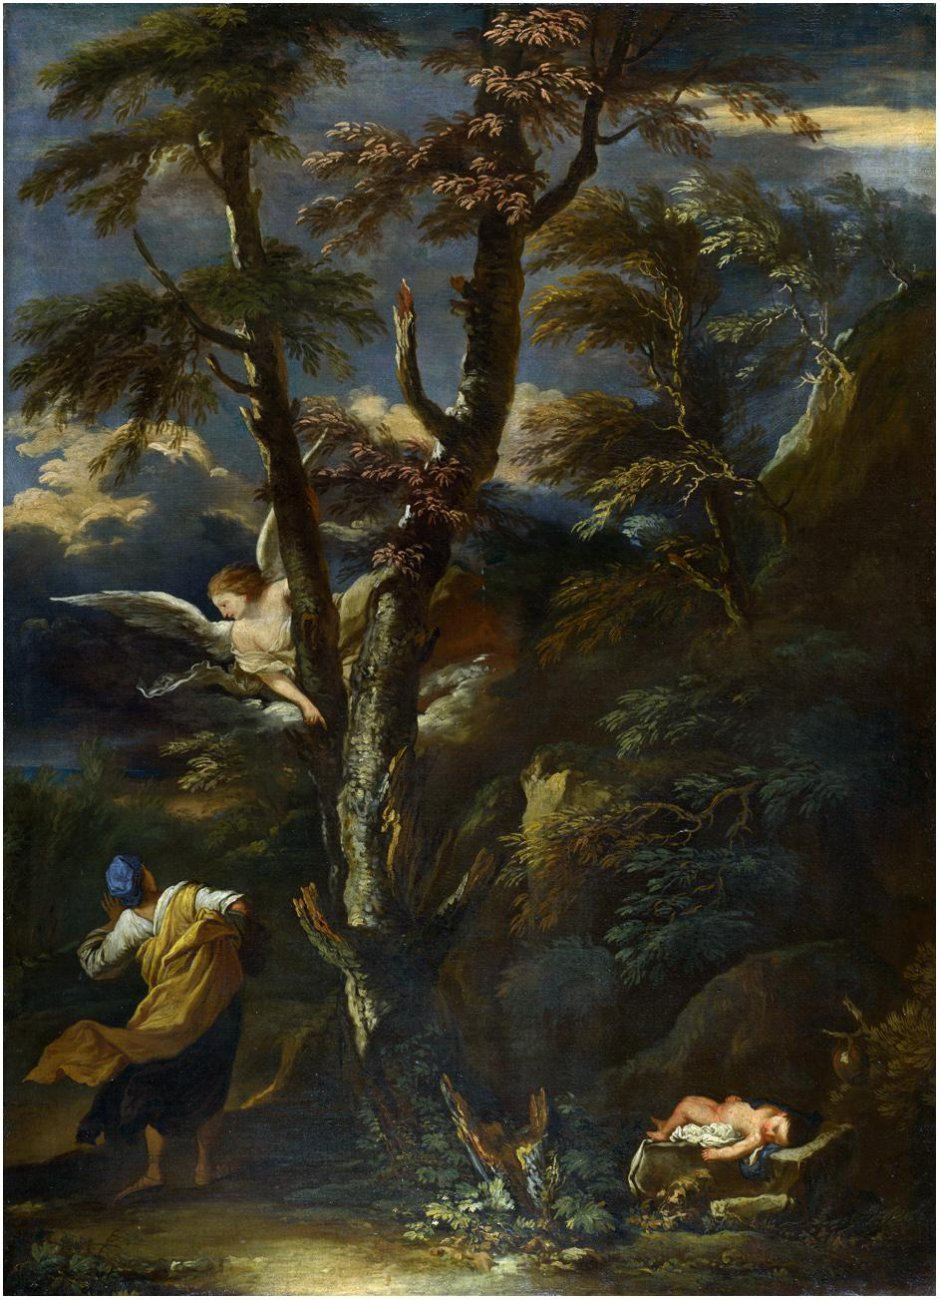 _Salvator Rosa - An Angel appears to Hagar and Ishmael in the Desert.jpg